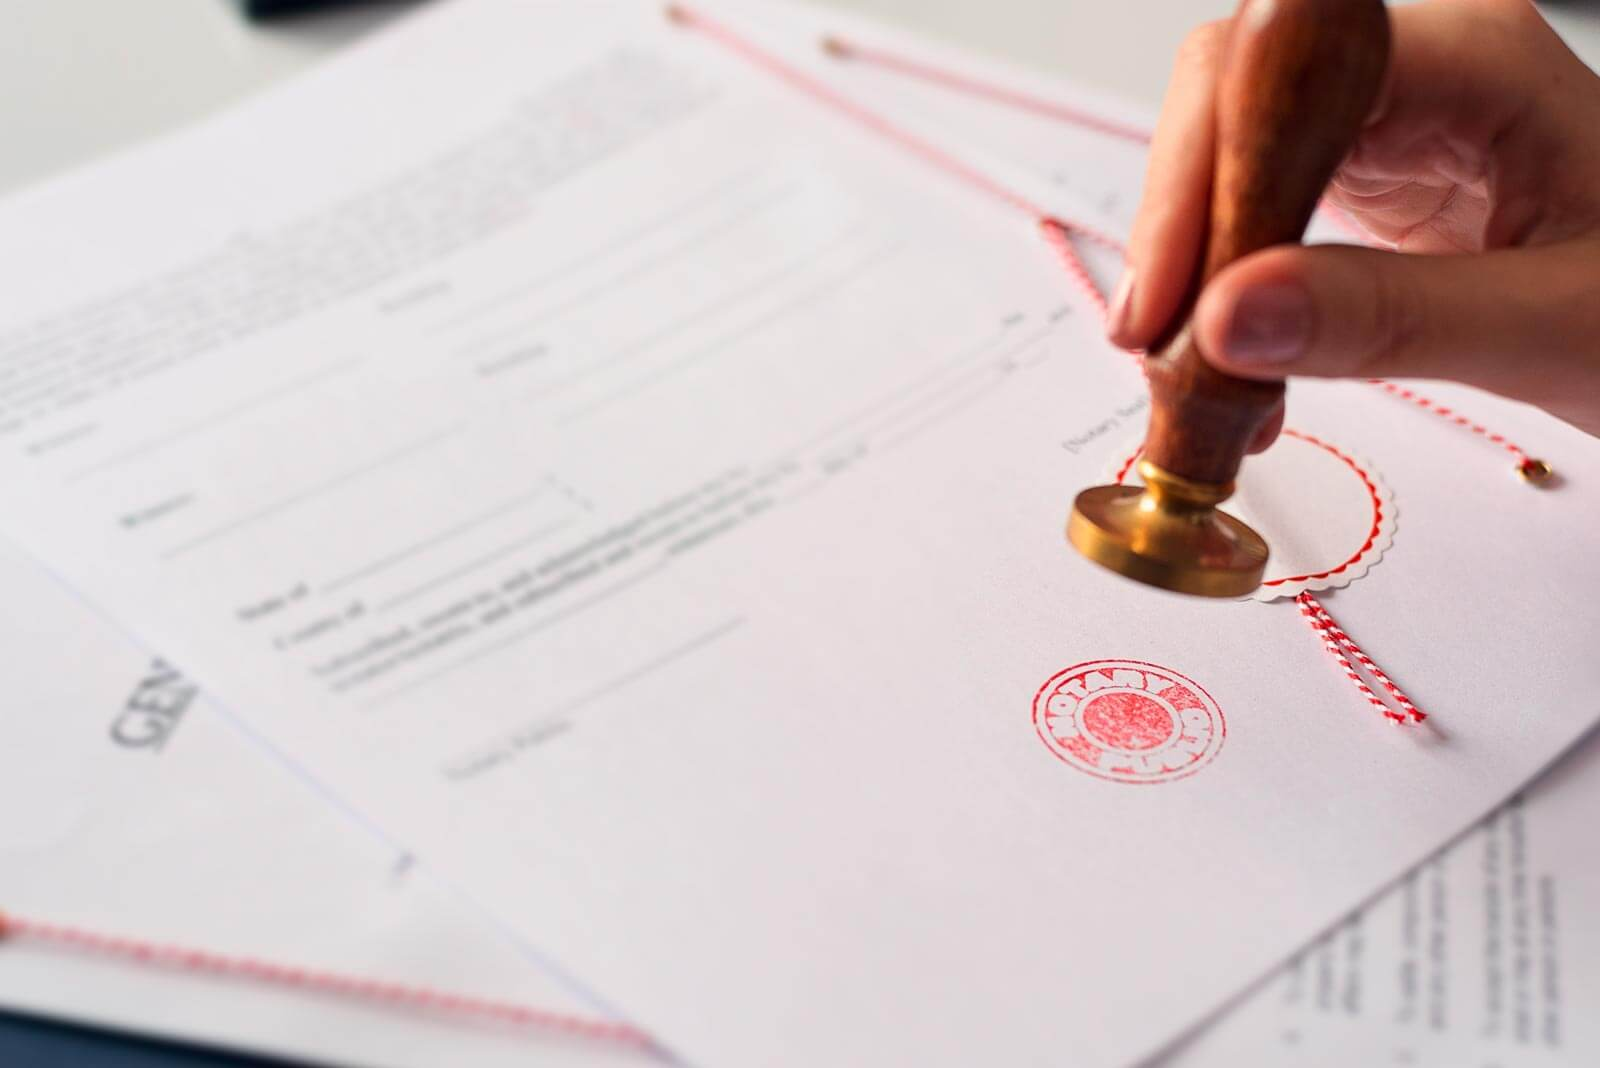 Stamping of a official document